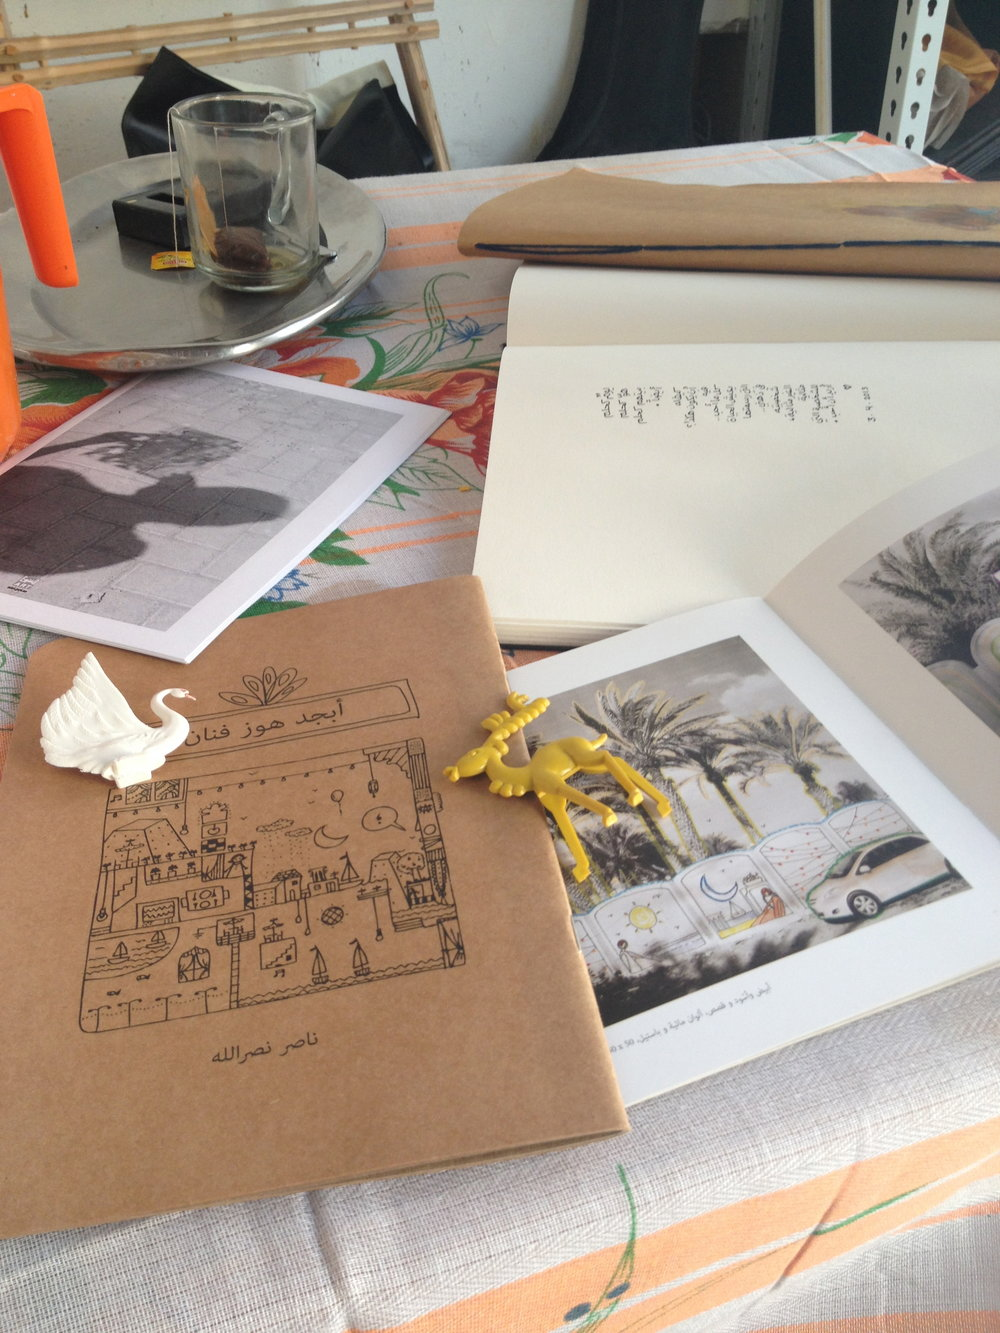 Tea, flipping through sketchbooks and artist gifts